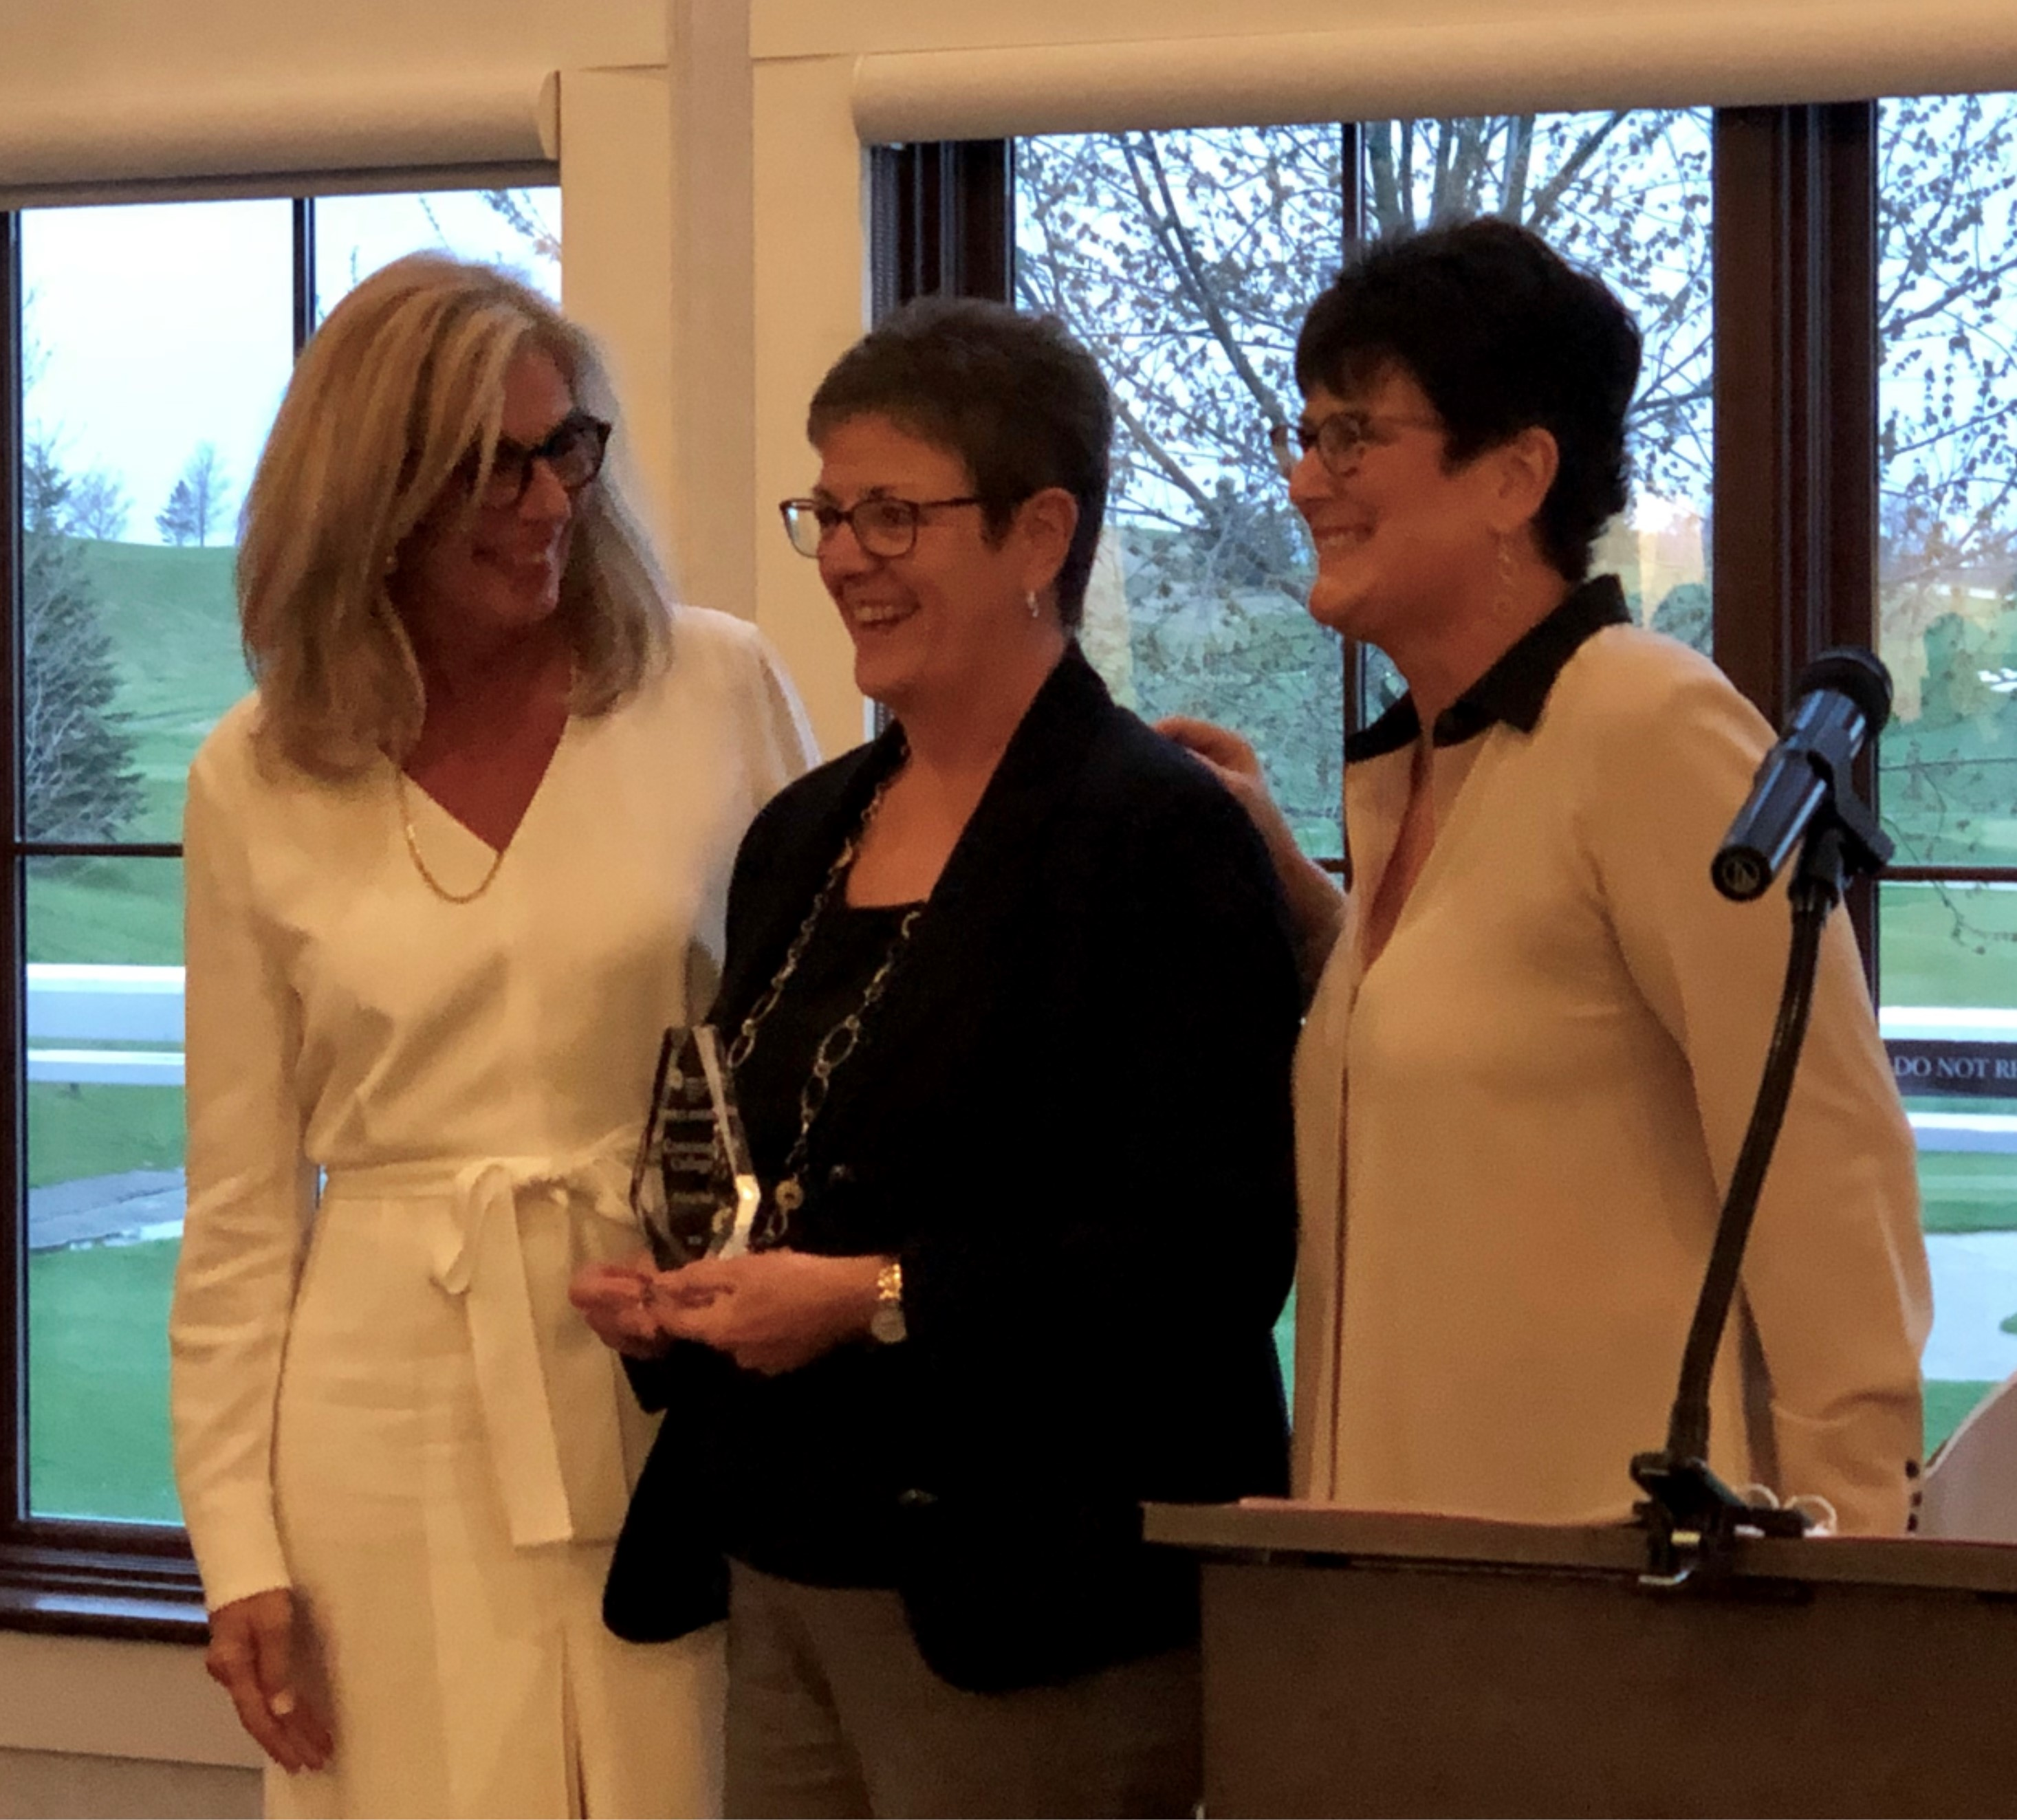 Conestoga College_United Way Spirit Awards_2019.jpg